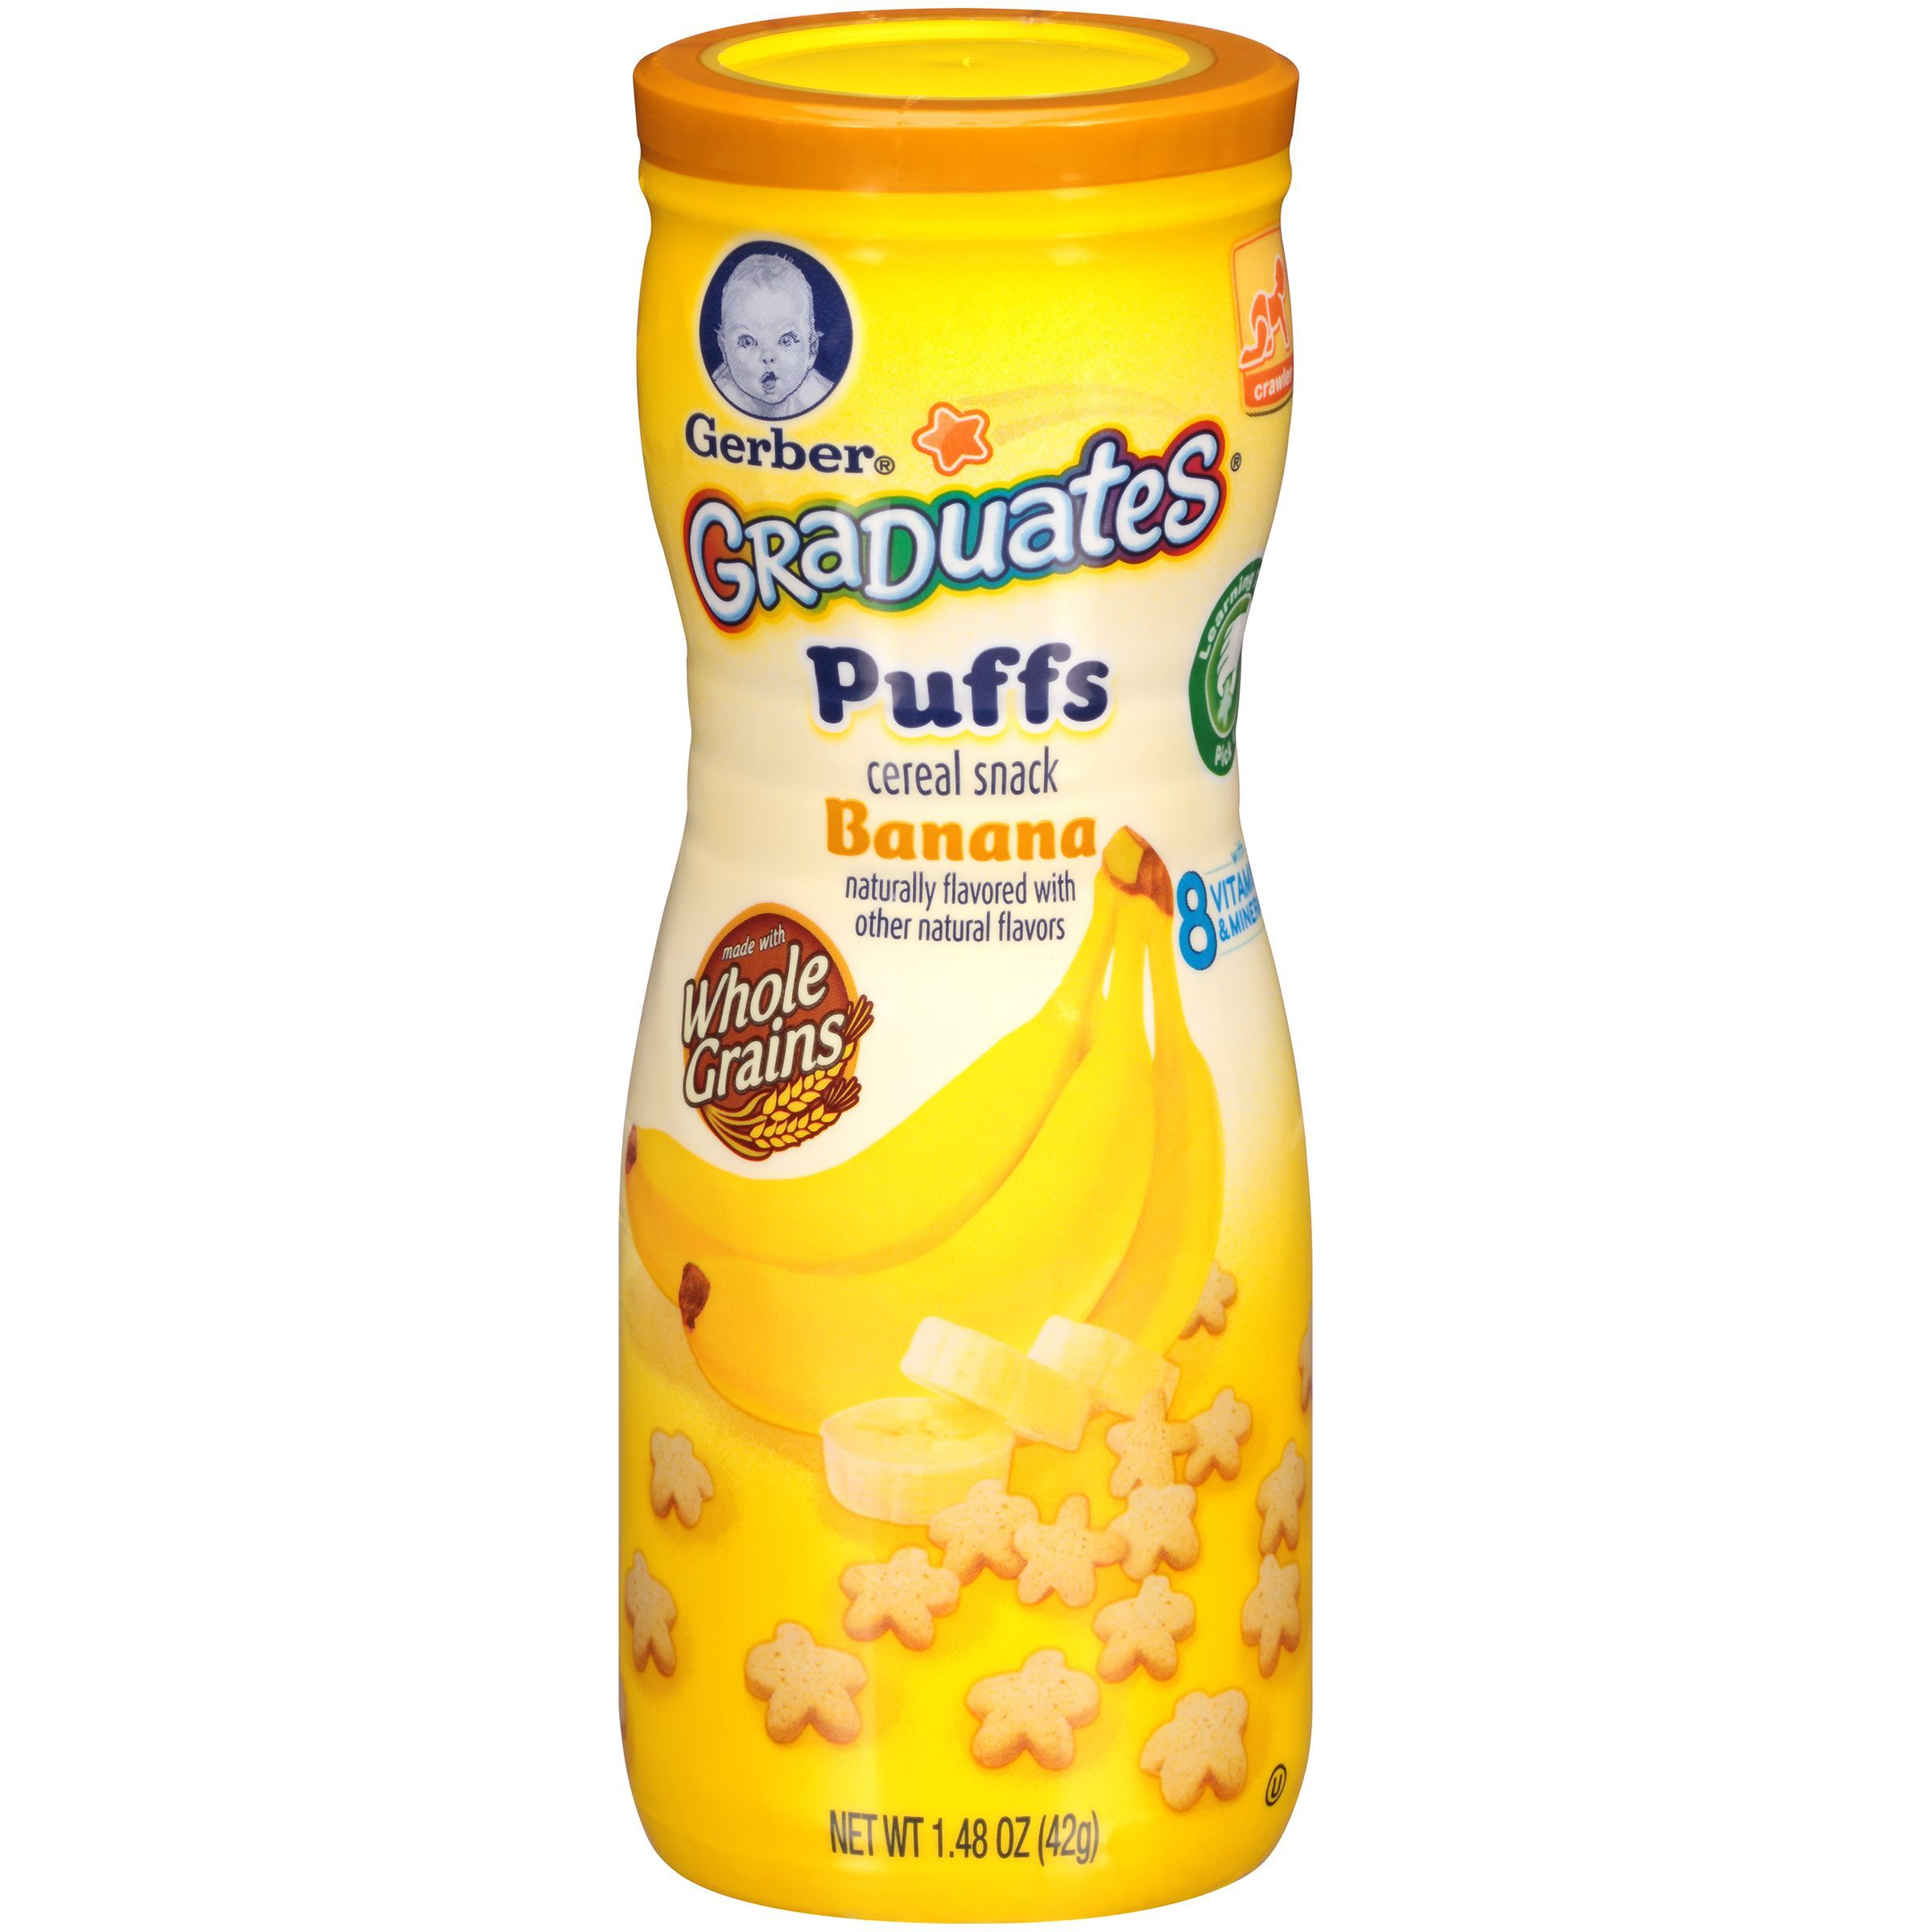 Gerber banana puffs cereal snack 148 oz canister puffs